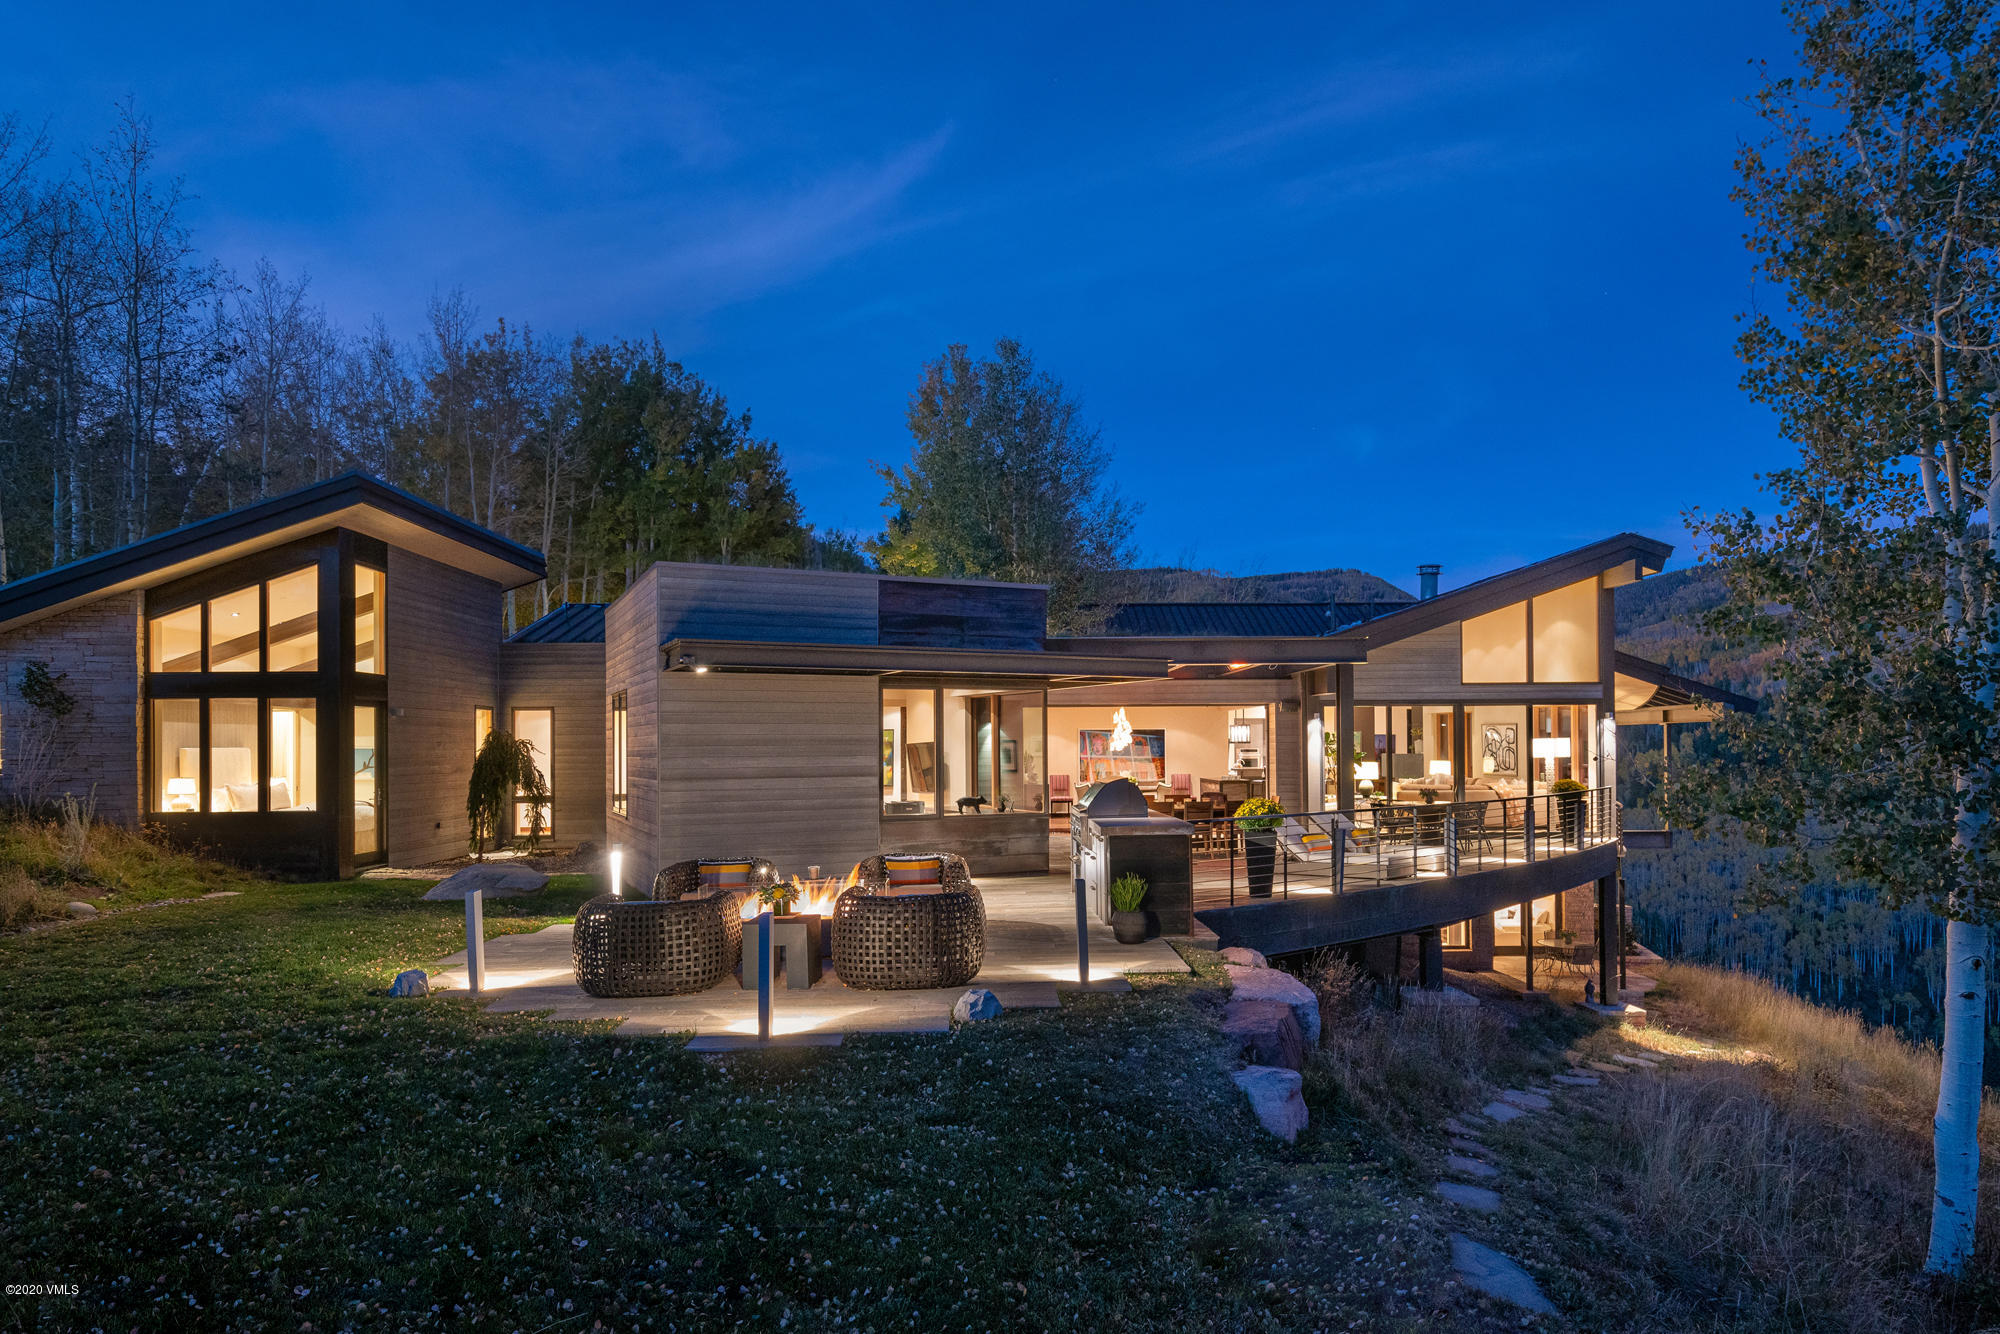 Tucked away in a dense forest of quaking aspen, high above Avon, Colorado in the exclusive Mountain Star neighborhood, 1268 Paintbrush will excite your senses with breathtaking views unlike any other in the Vail Valley. This six-bedroom, eight-bath, 8,590 square-foot residence is a mastery of classic modern design by KH Webb Architects with a complimentary mix of materials and an innovative layout that highlight its exceptional mountainside location. From any vantage point in this truly private residence, not a single residential or commercial structure obstructs the sensational scenery of the protected Buck Creek Gulch below and the White River National Forest to the east. It's the kind of ultimate privacy that is talked about yet rarely found. When contemplating this modern masterpiece, it's hard imagine a more special location in the Vail Valley that's also just six minutes from the bustling Town of Avon and Beaver Creek Resort, and 20 minutes to Vail with world-class recreation, shopping, dining and resort amenities. Please visit MountainStarViews.com/?mls for more details.